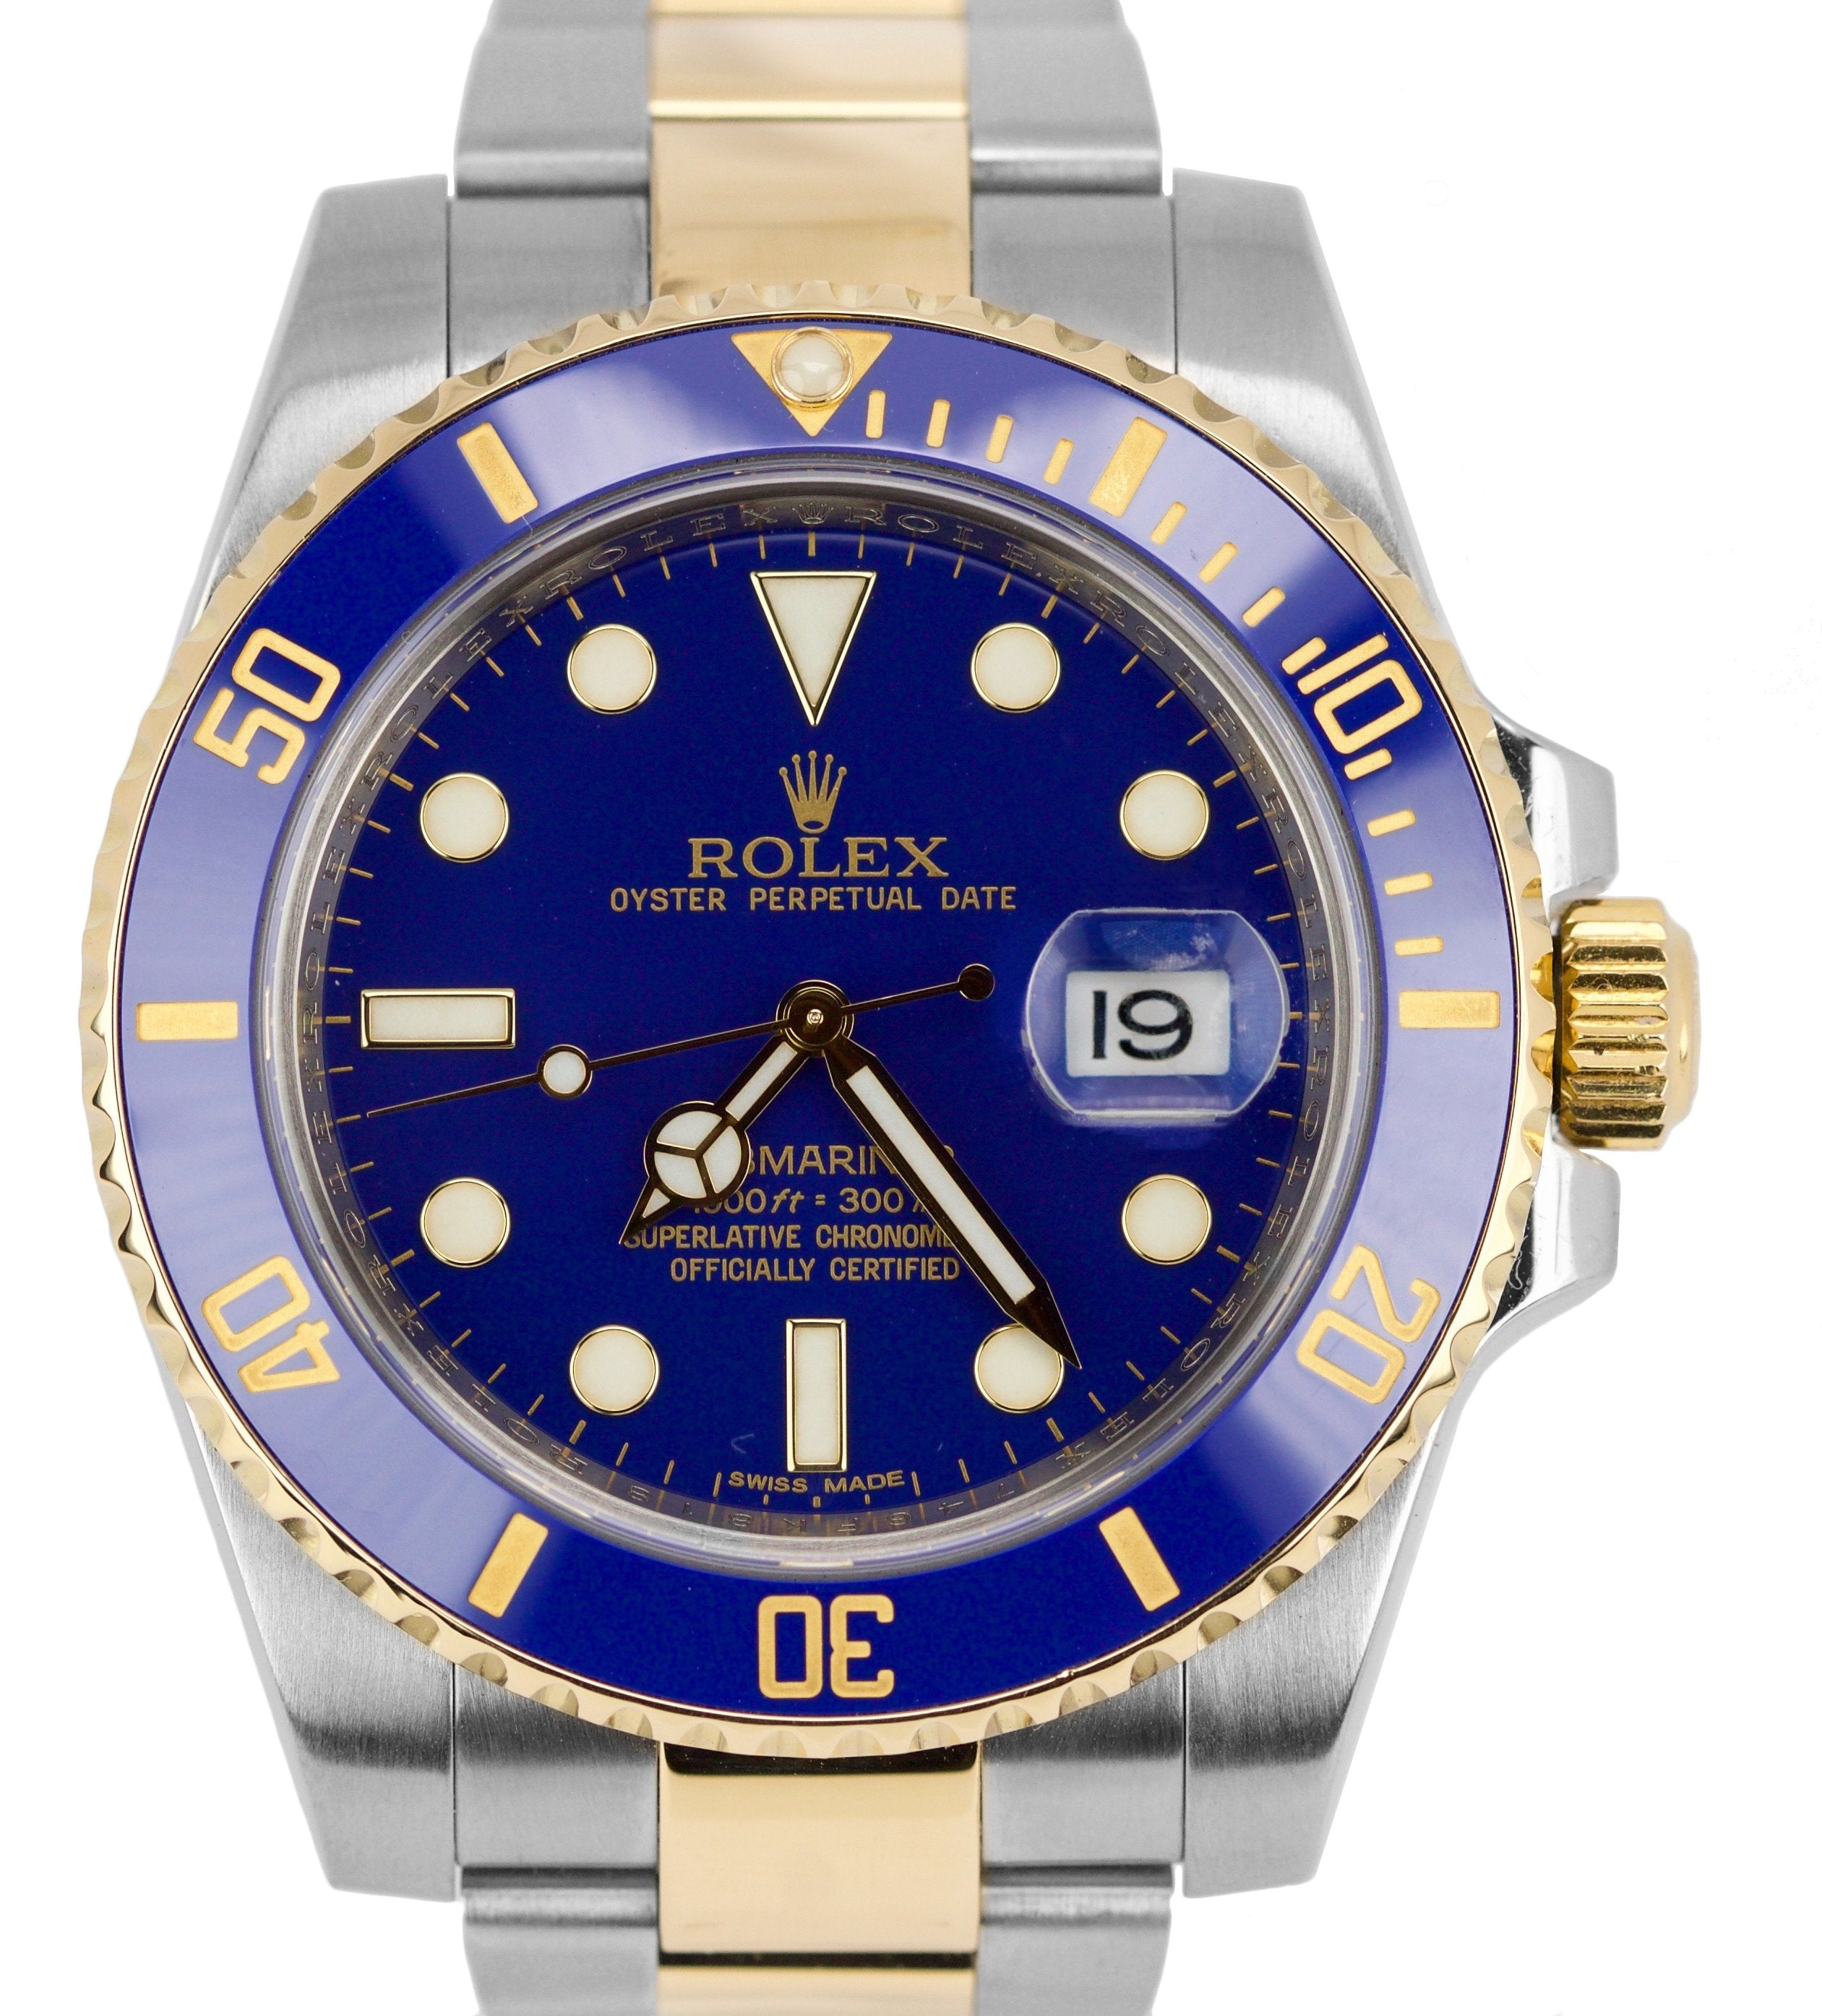 2018 PAPERS Rolex Submariner Date Ceramic 116613 Two Tone Gold Blue Dive Watch